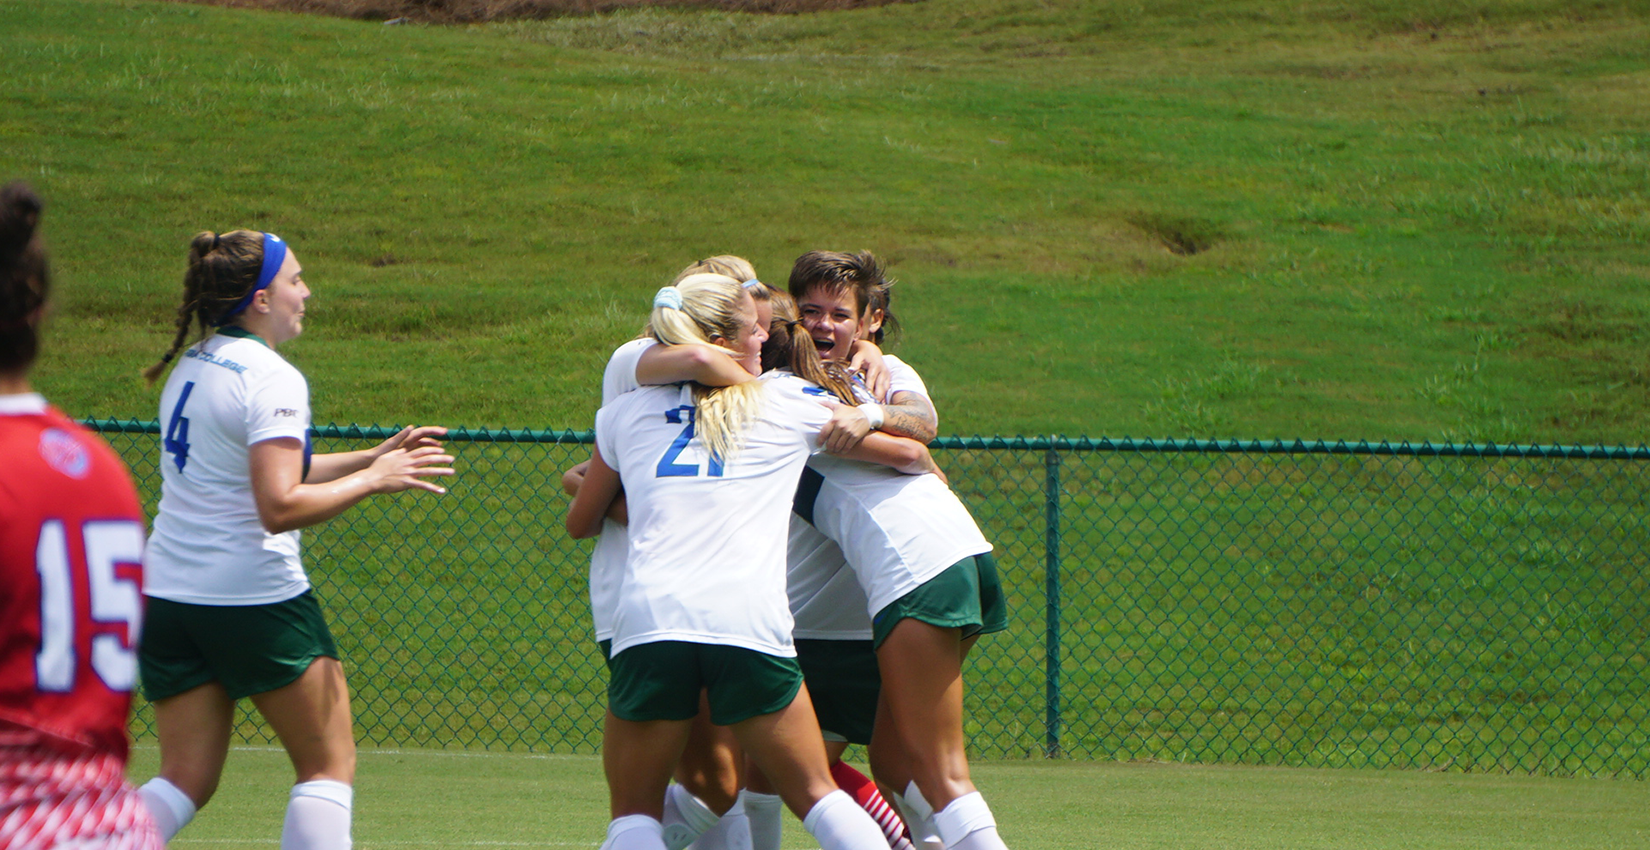 No. 13 Bobcat Soccer Blows Past the Hurricanes, 5-0